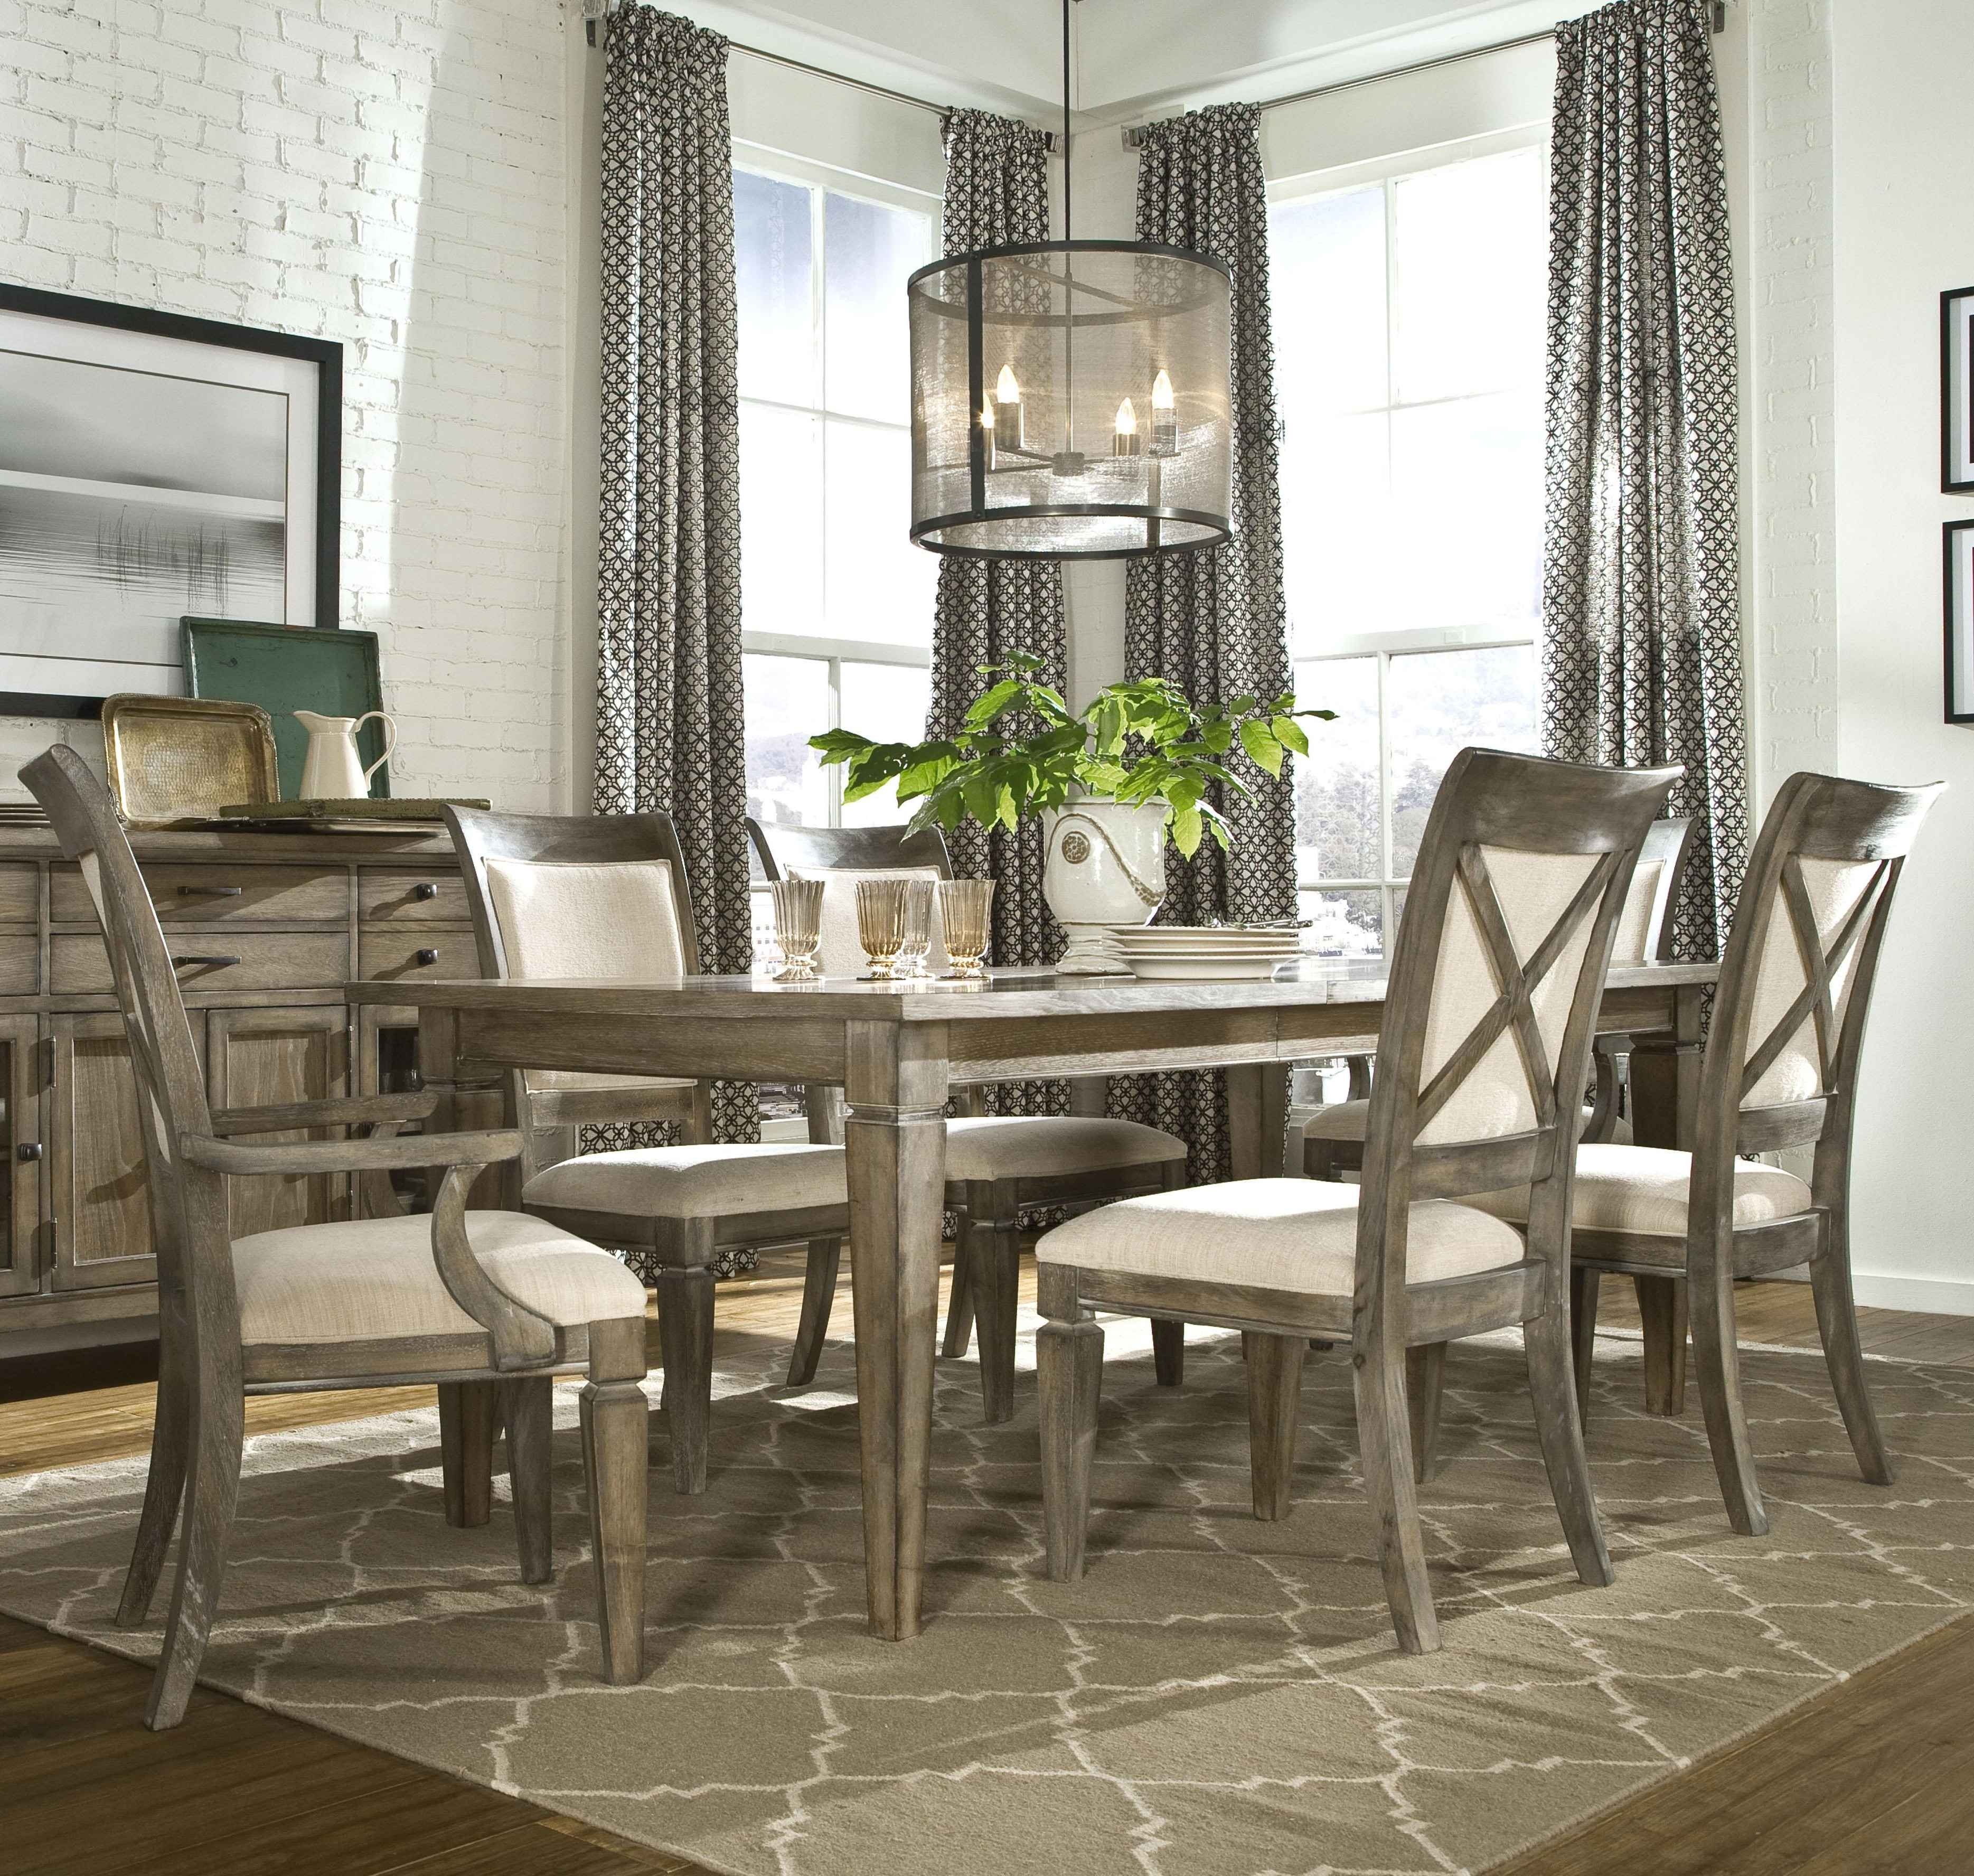 Kitchen Dinette Sets 7 Piece Dining Set Cheap 7 Piece Counter Height For Well Known Jaxon 7 Piece Rectangle Dining Sets With Wood Chairs (View 22 of 25)